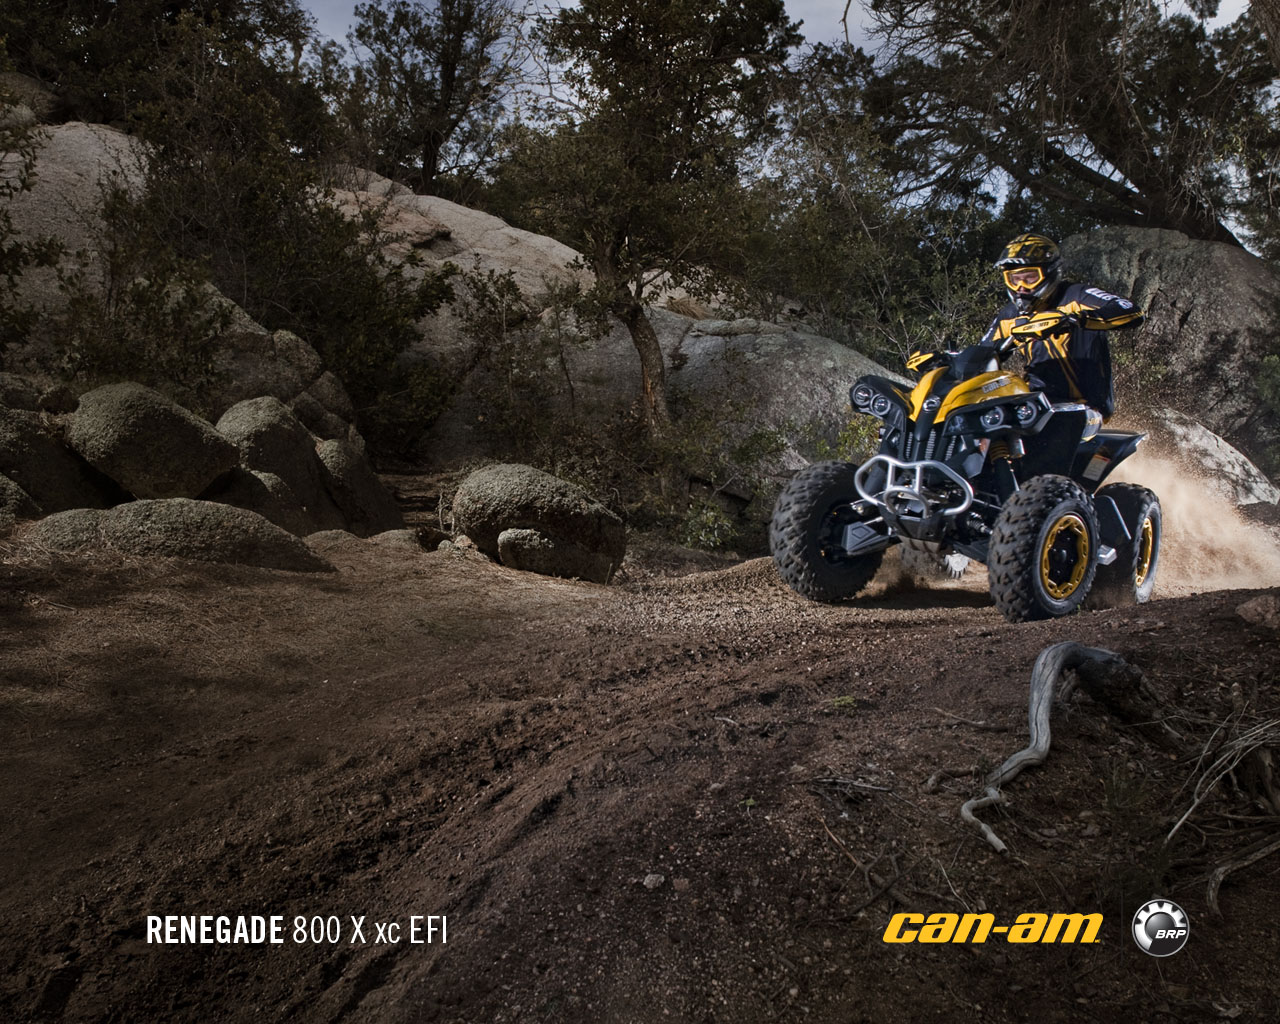 CAN-AM BOMBARDIER Renegade 800 R X xc 2011 photo 3